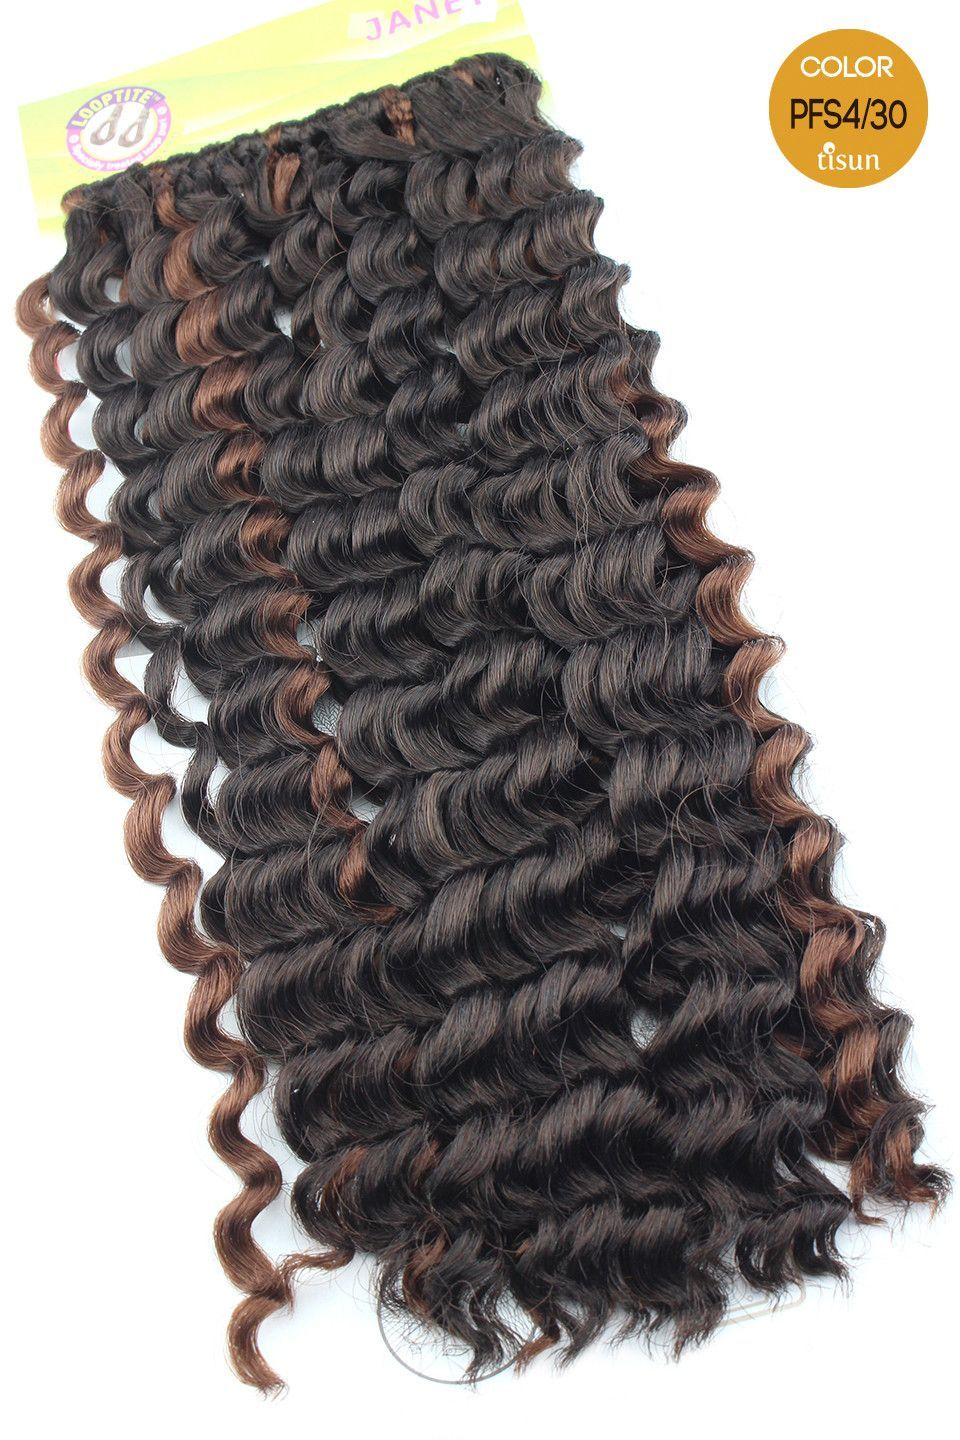 Janet collection mambo open loop brazilian twist braid